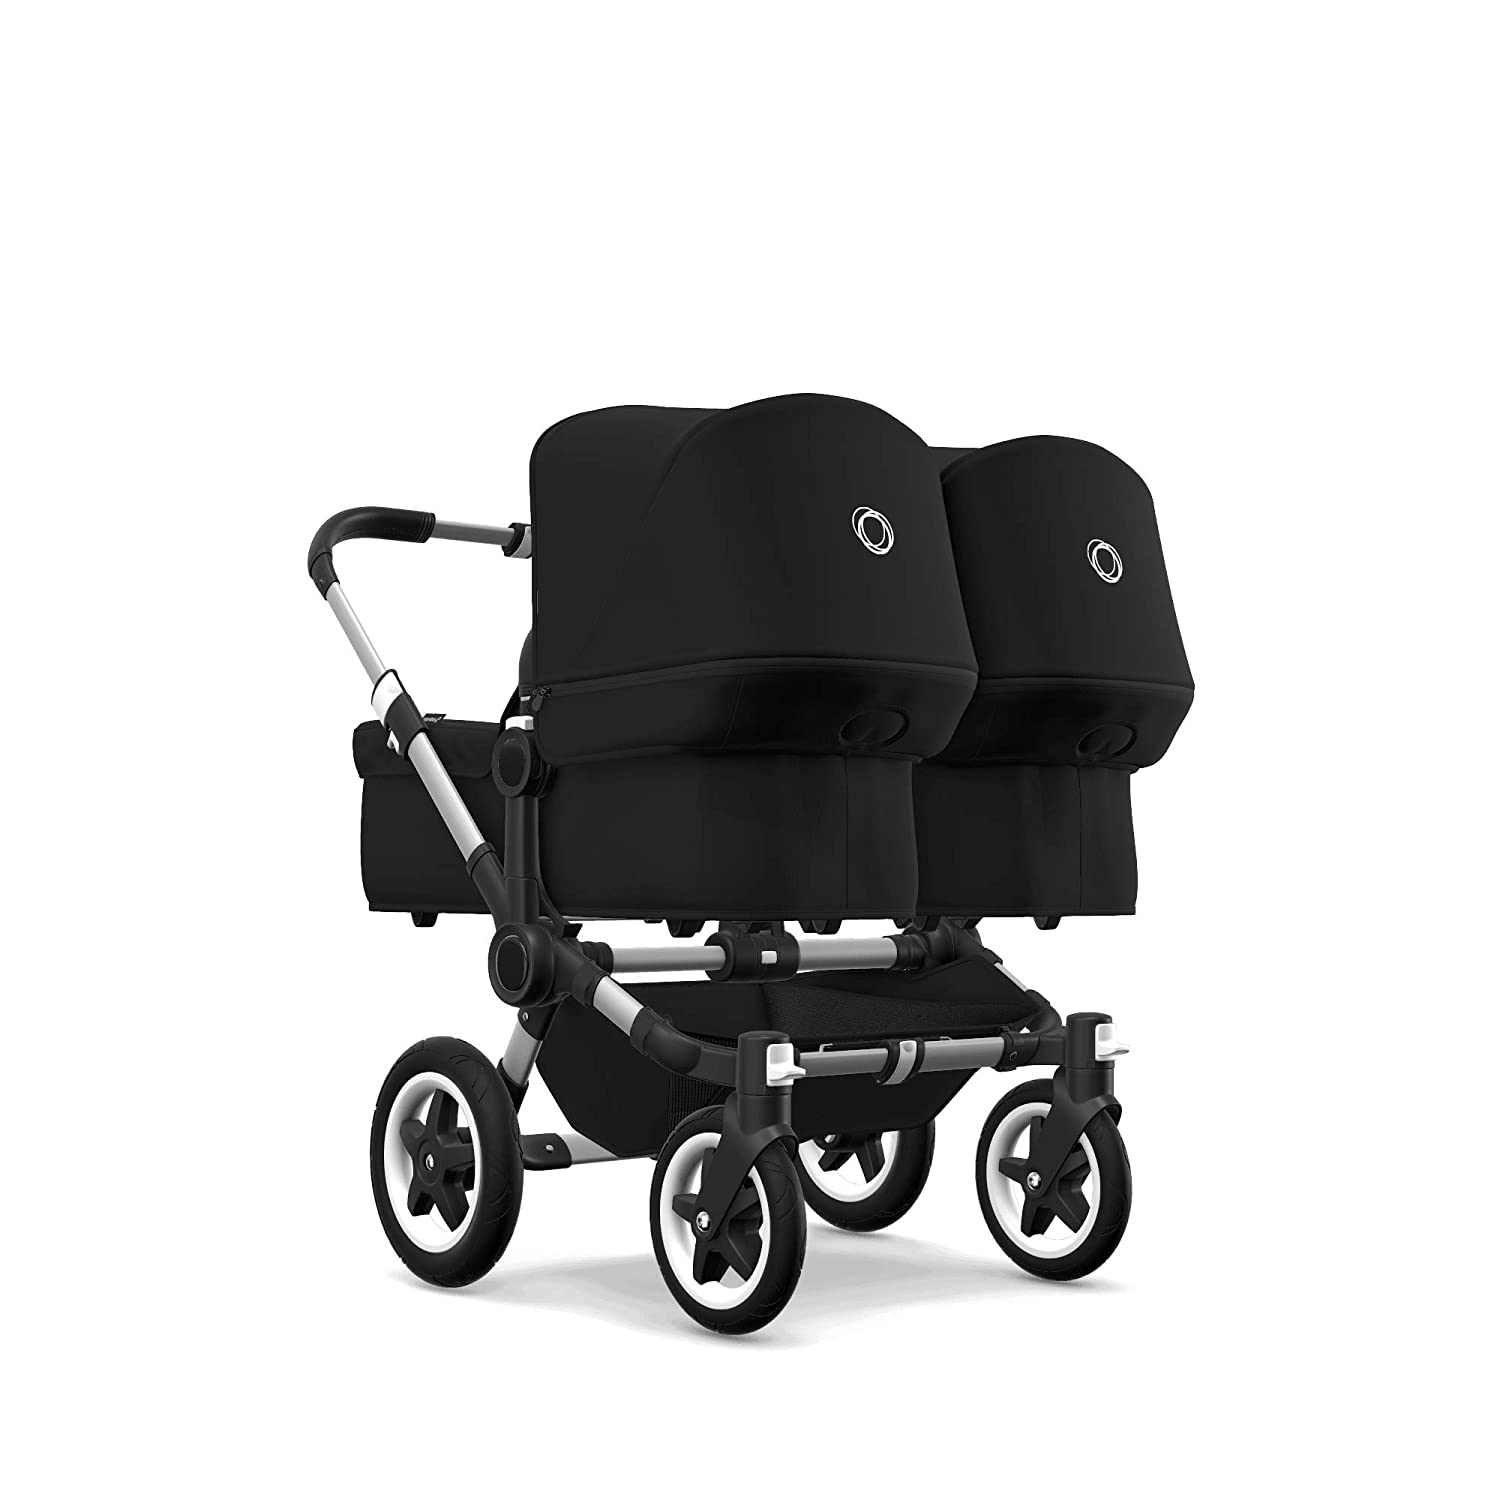 Machine Washable Extendable Sun Shade for Full Weather Protection Bugaboo Donkey2 Sun Canopy Waves